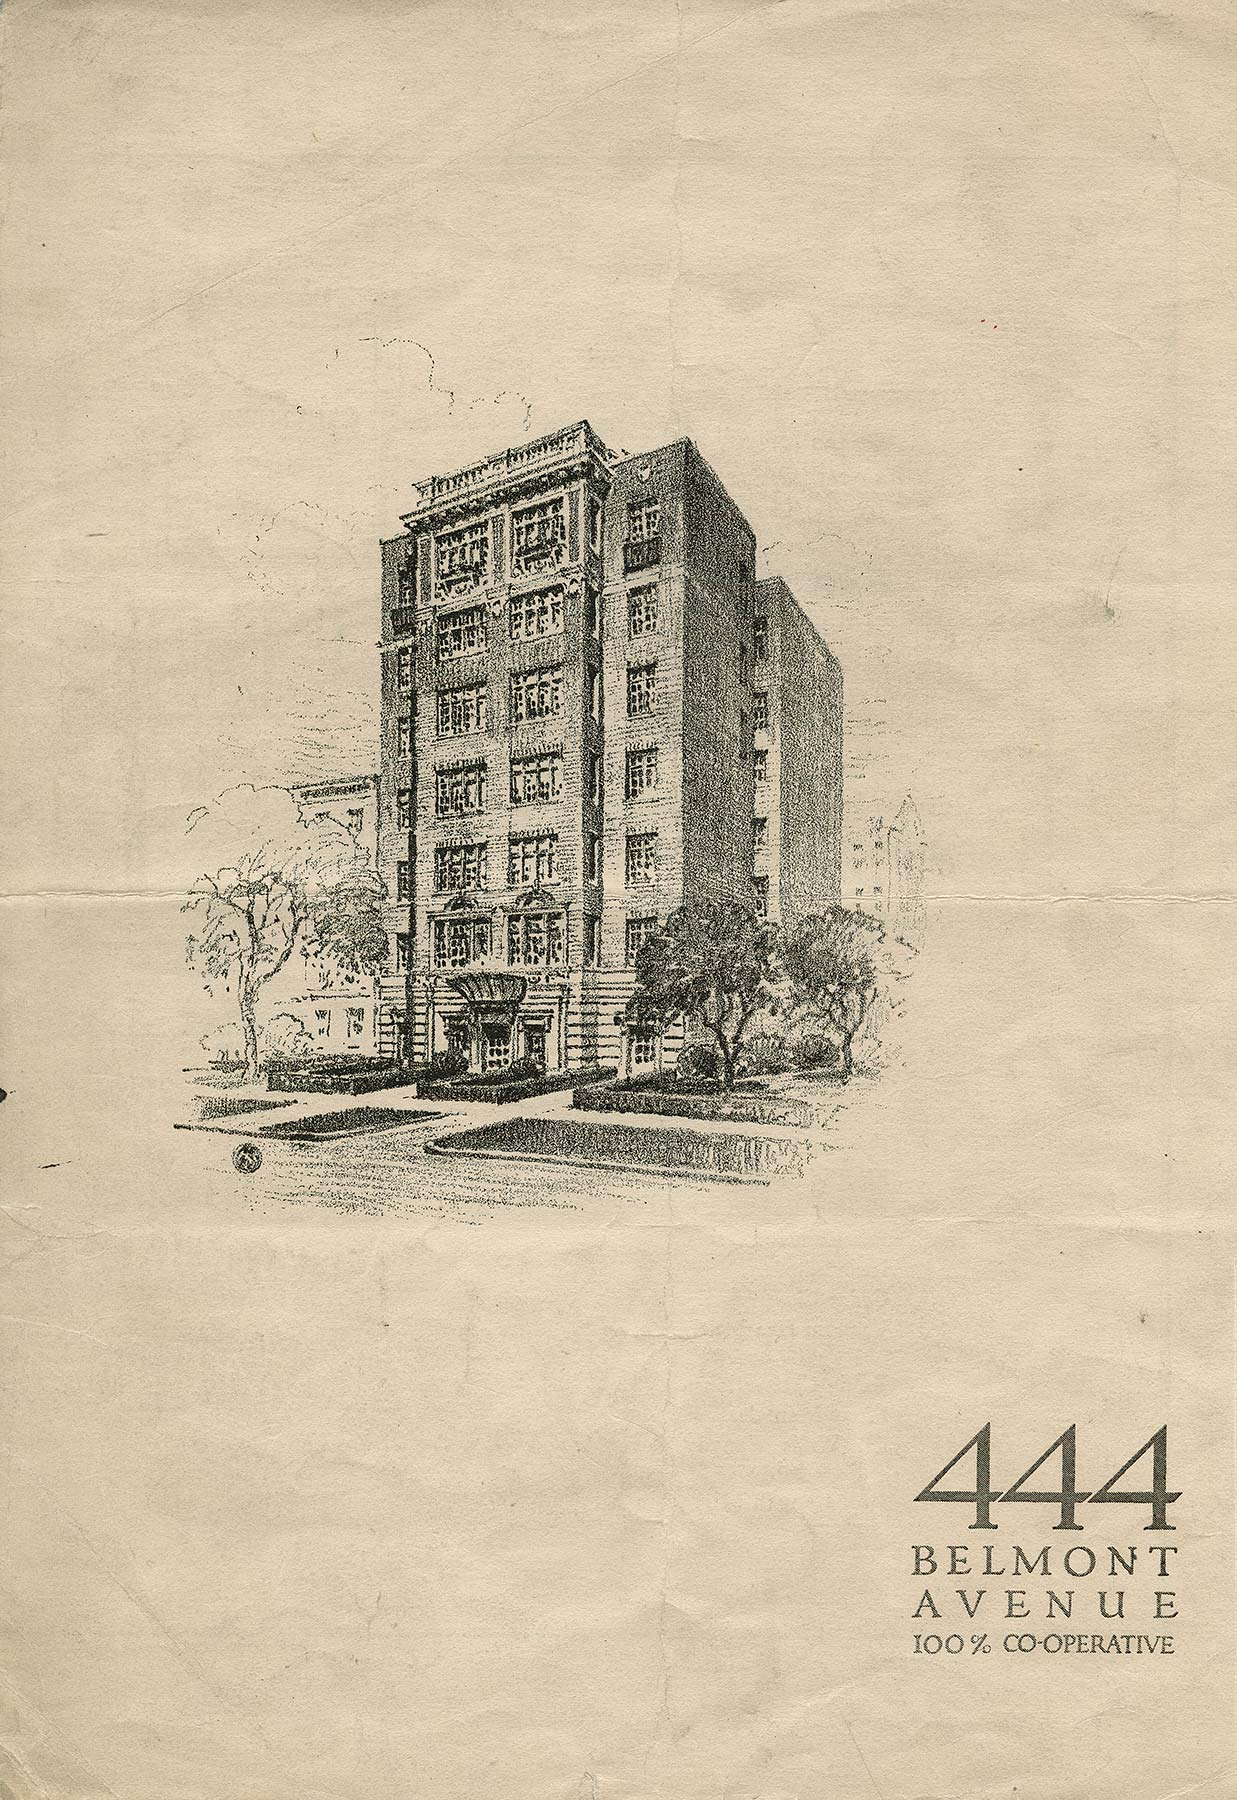 Oman & Lilienthal became well known for designing luxury rental and cooperative apartments in the 1920s, including 444 W. Belmont Avenue, Chicago, IL. Oman & Lilienthal, architect. McNally & Quinn Records, Ryerson and Burnham Archives, The Art Institute of Chicago. Digital File #198002_150806-015.